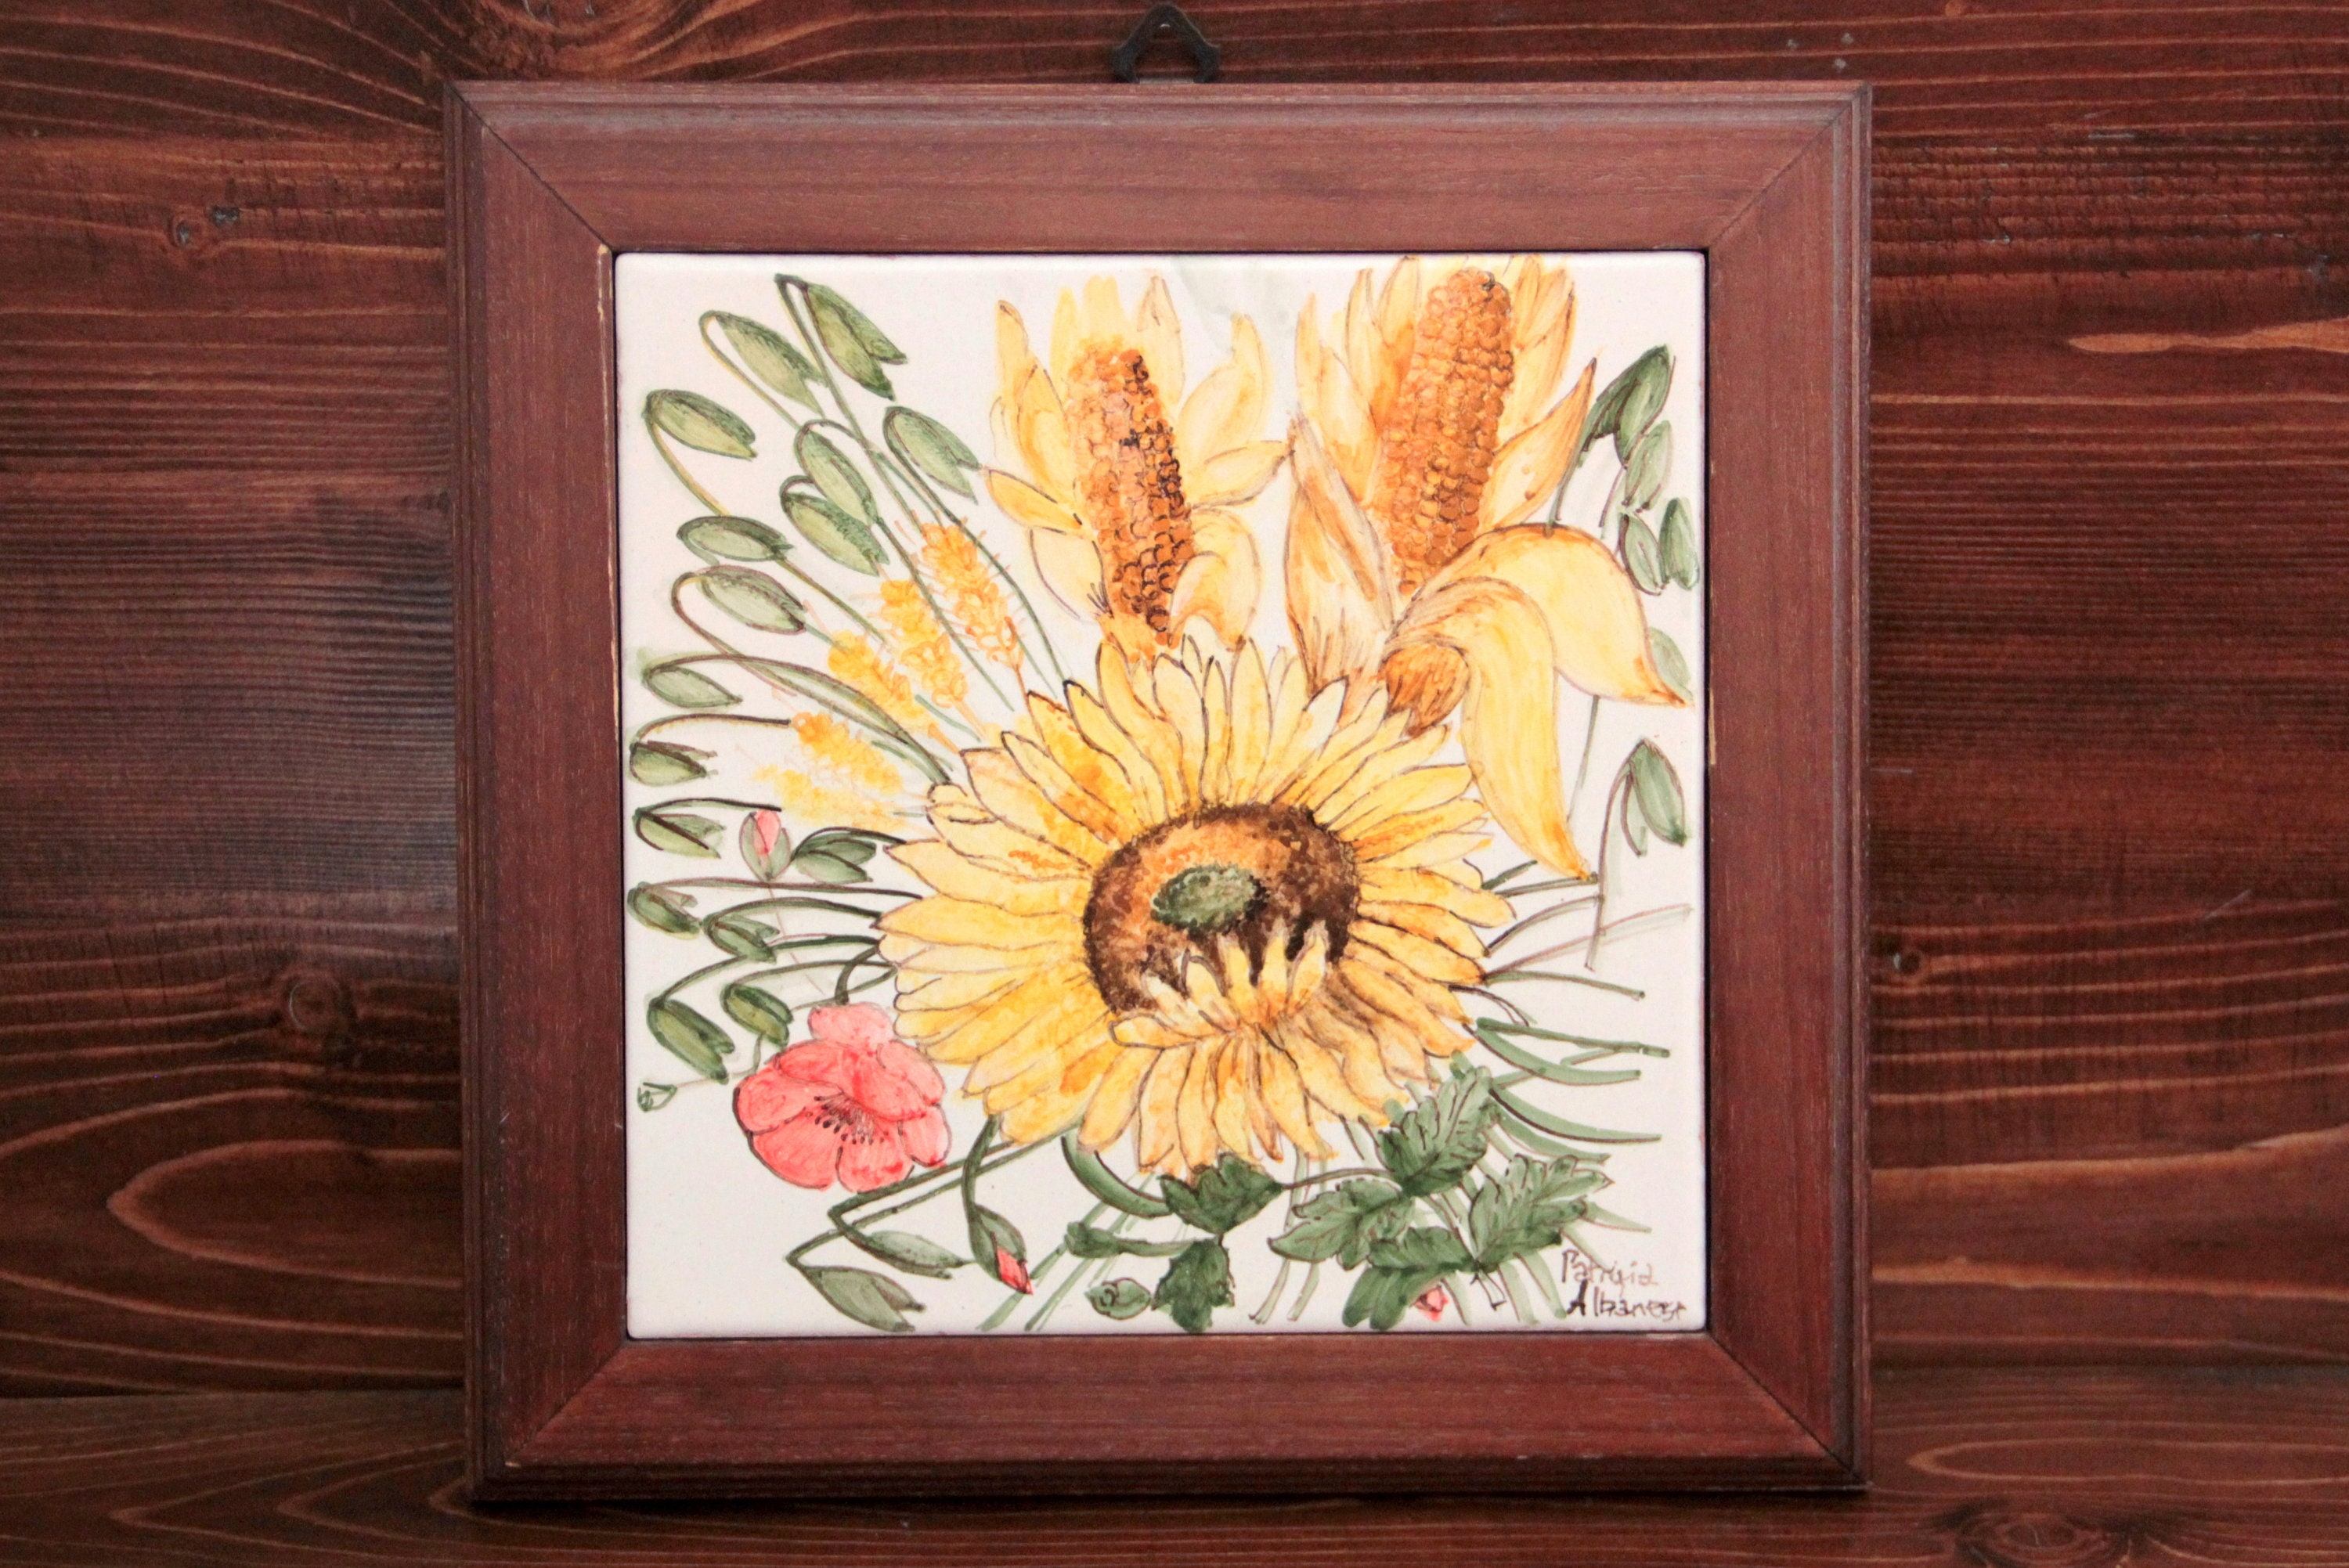 Sunflowers tile artistic ceramics Italy majolica sunflowers picture ...